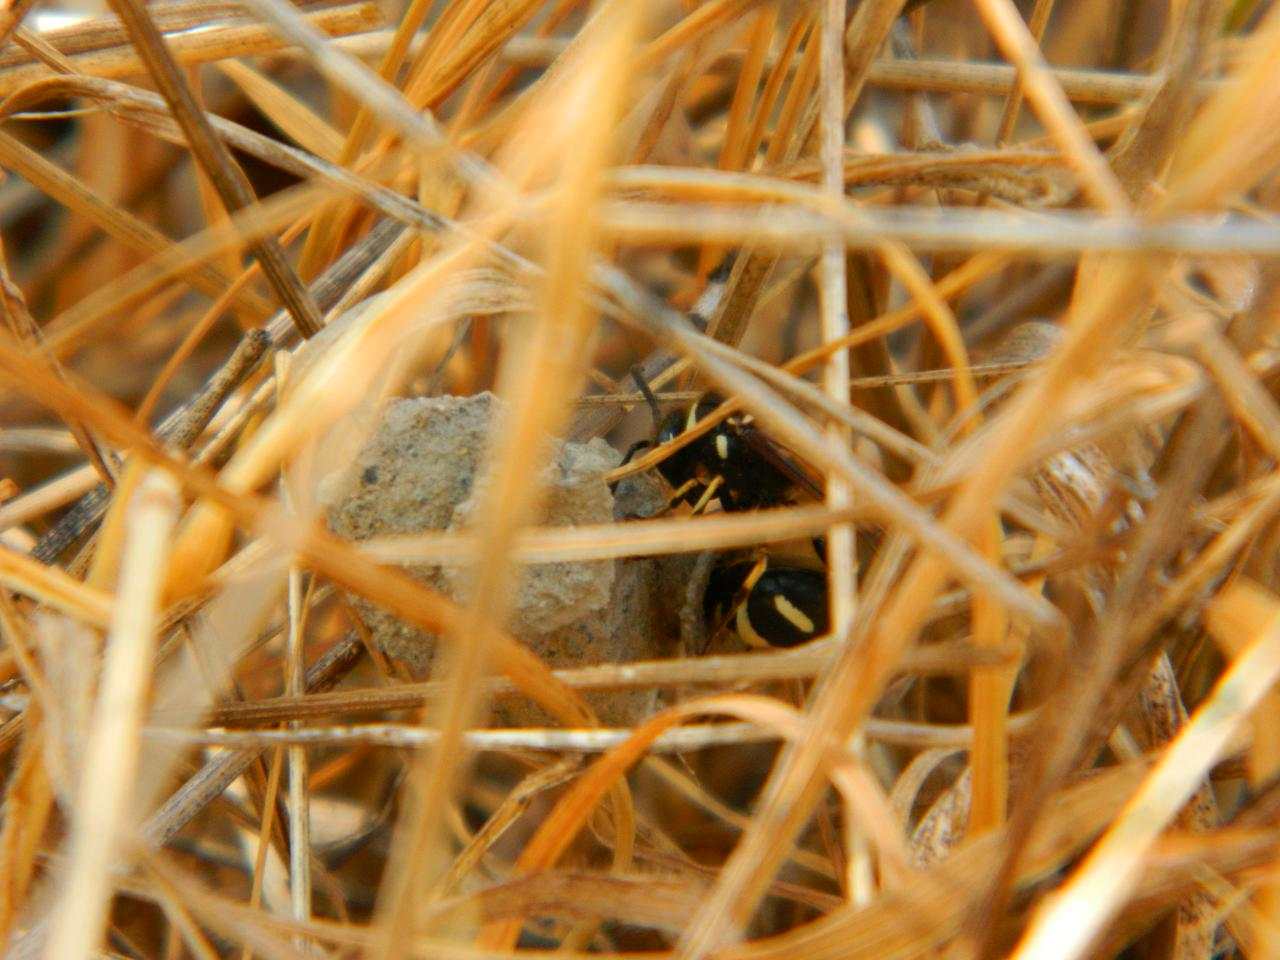 Potter wasp mama laying her egg inside the nest